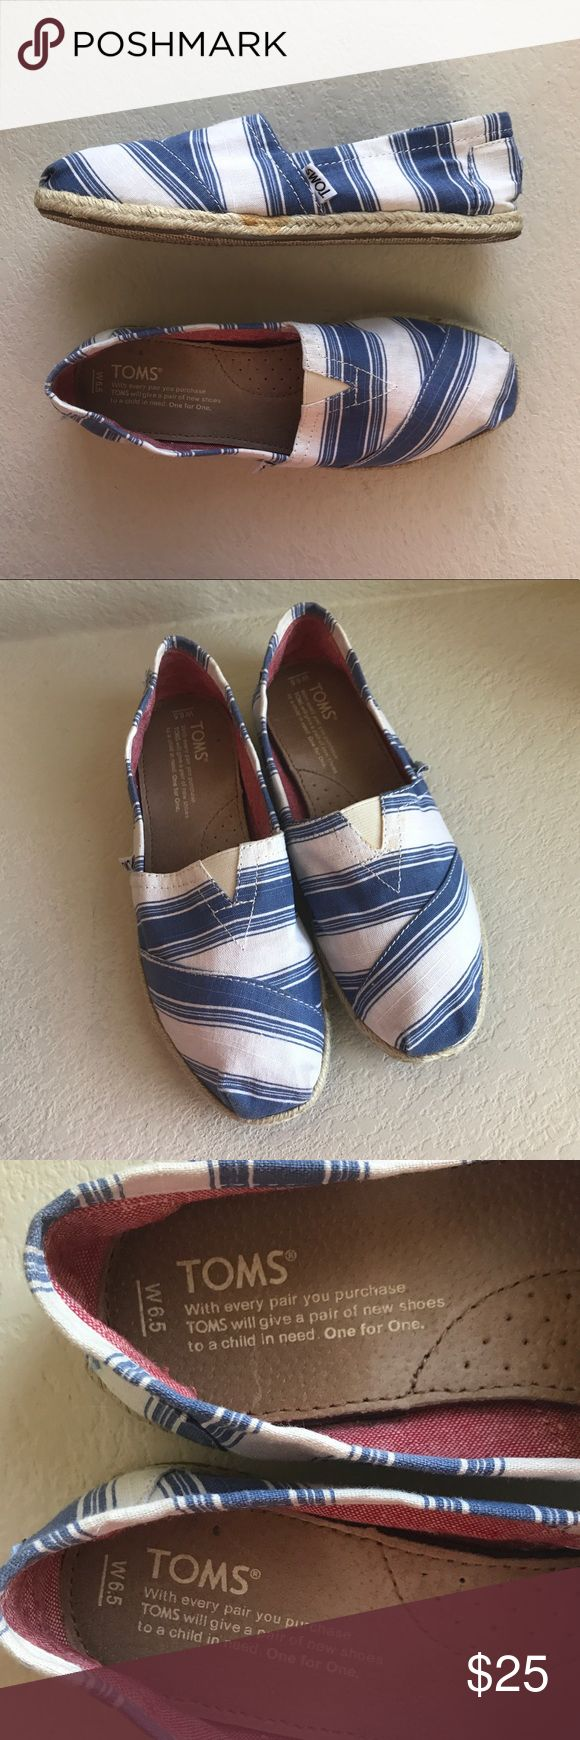 TOMS women's white and blue canvas shoes size 6.5 TOMS women's white and blue canvas fabric shoes size 6.5. Excellent condition. Clean condition and inner soles intact. No smells. Some signs of wear outside bottom of shoes as shown. Toms Shoes Espadrilles